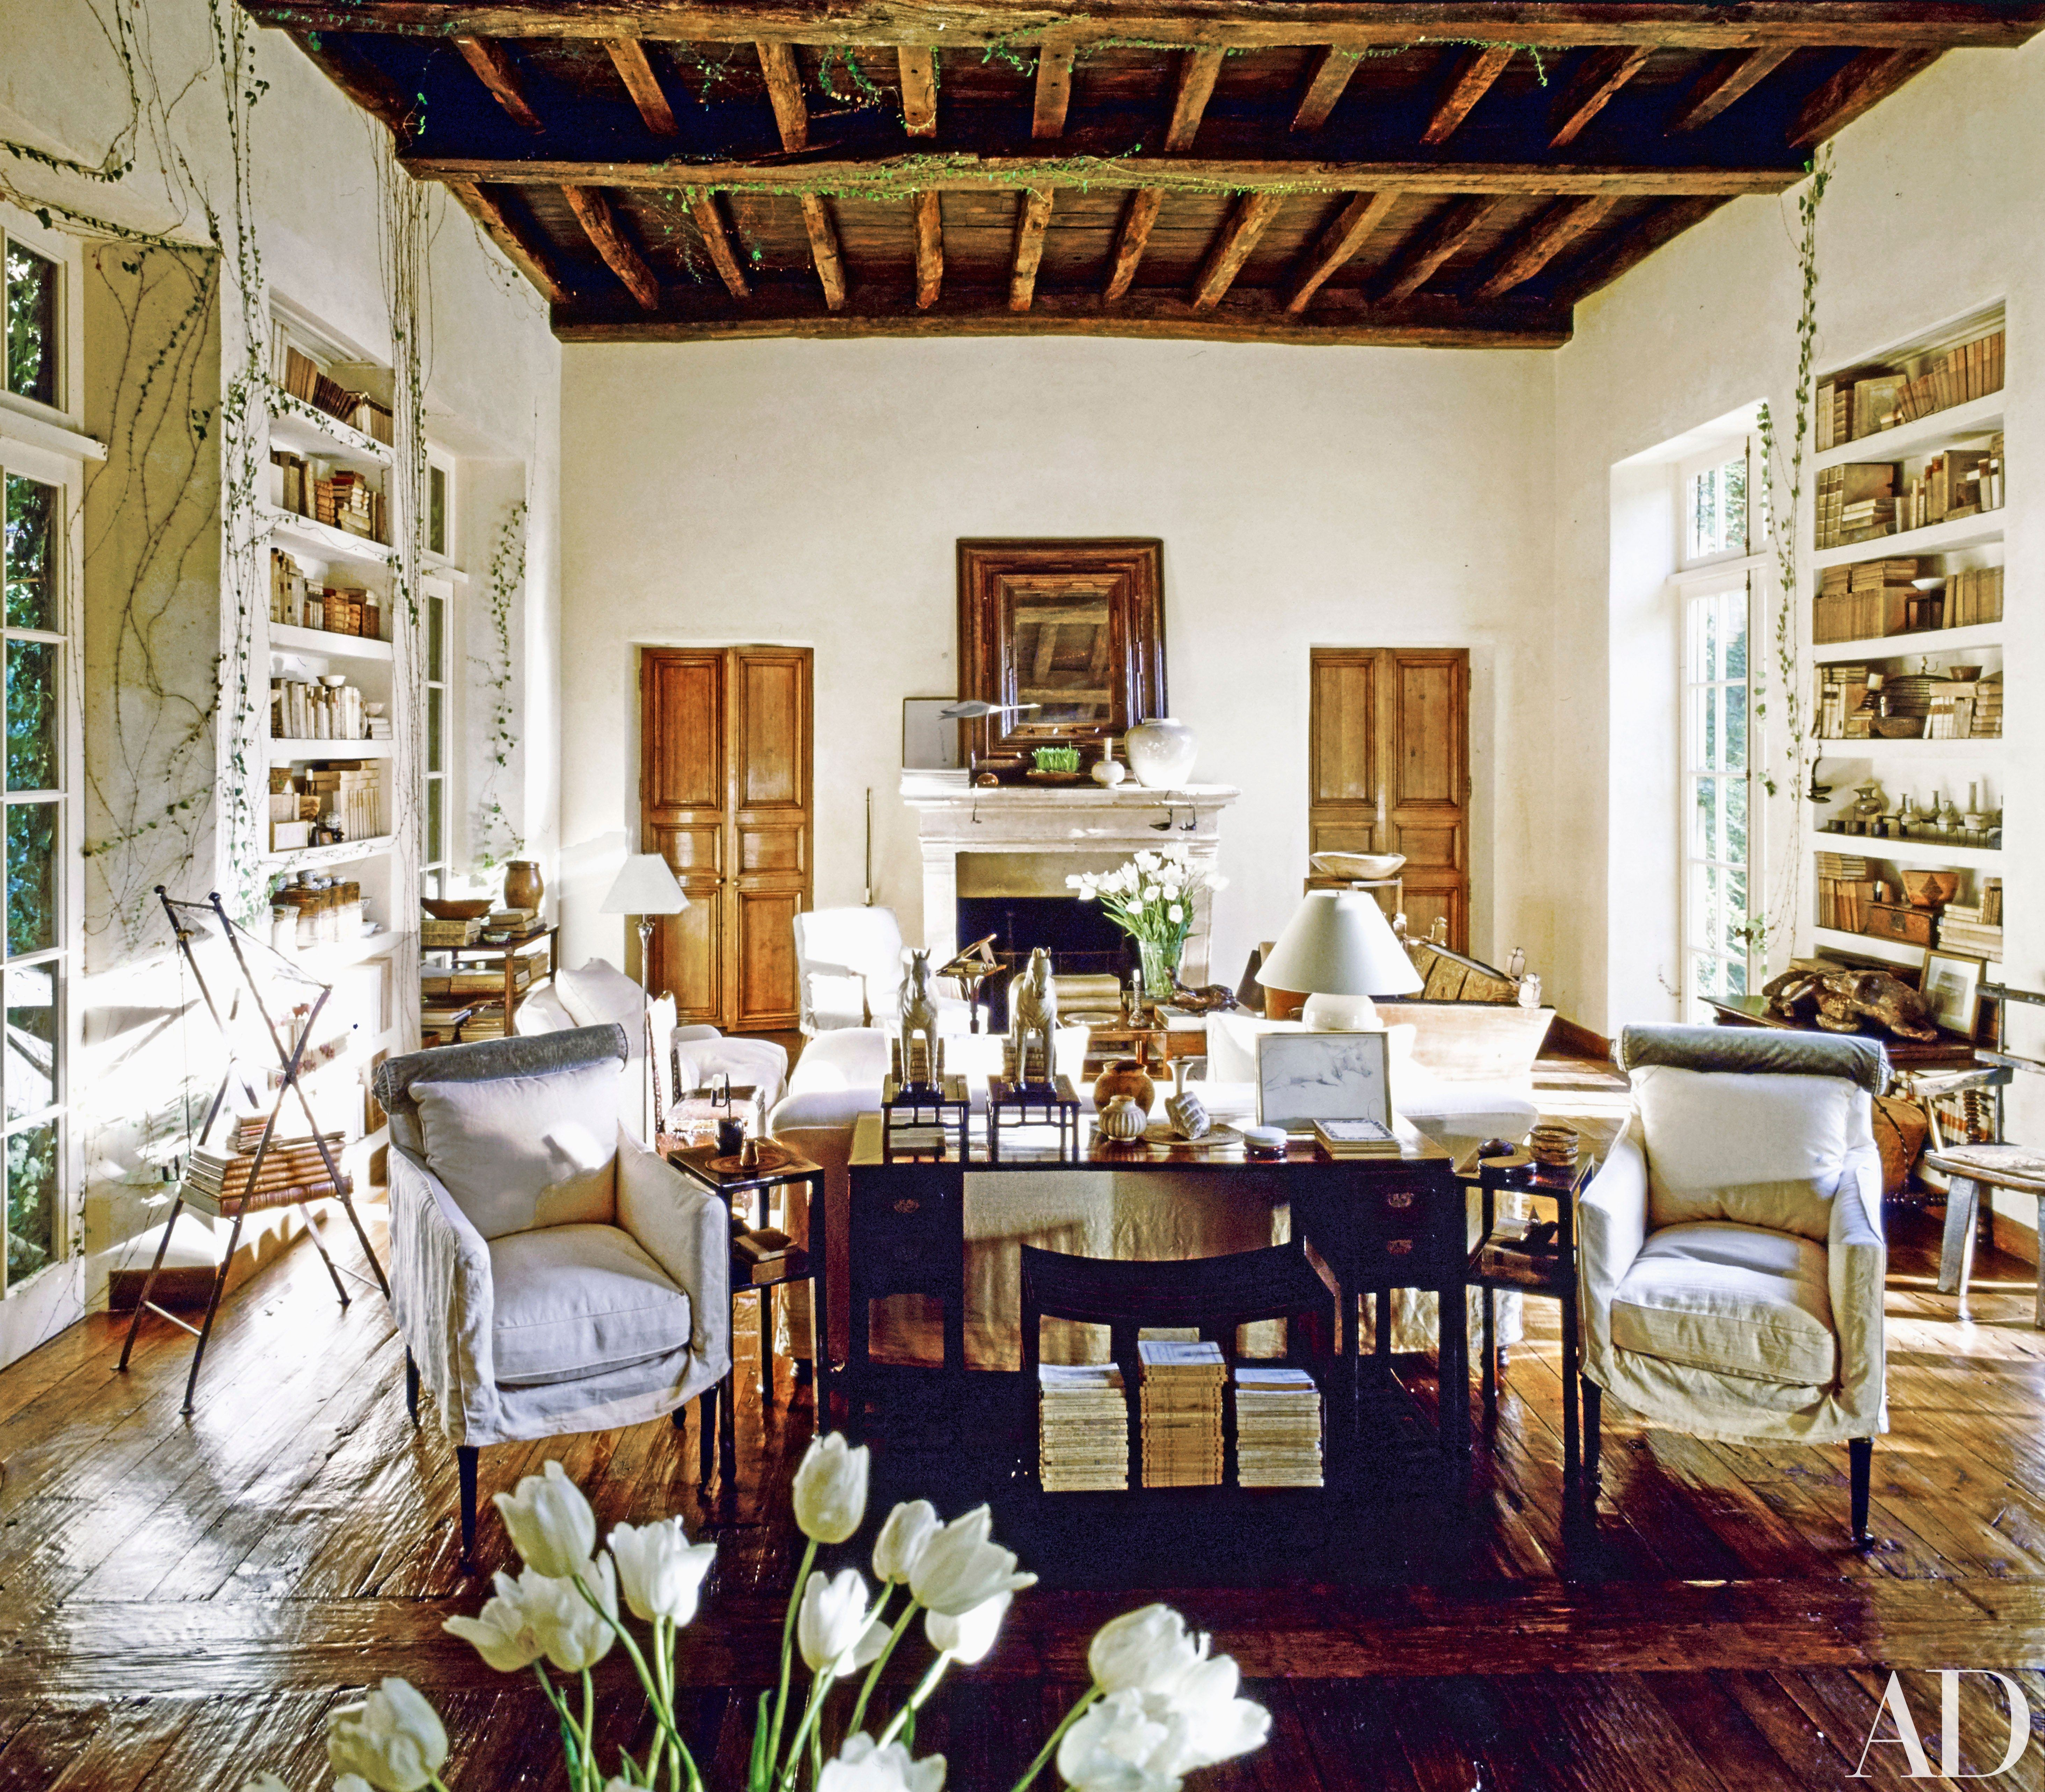 Home decorators collection revisited southern hospitality - Go Inside 15 Designers Own Homes